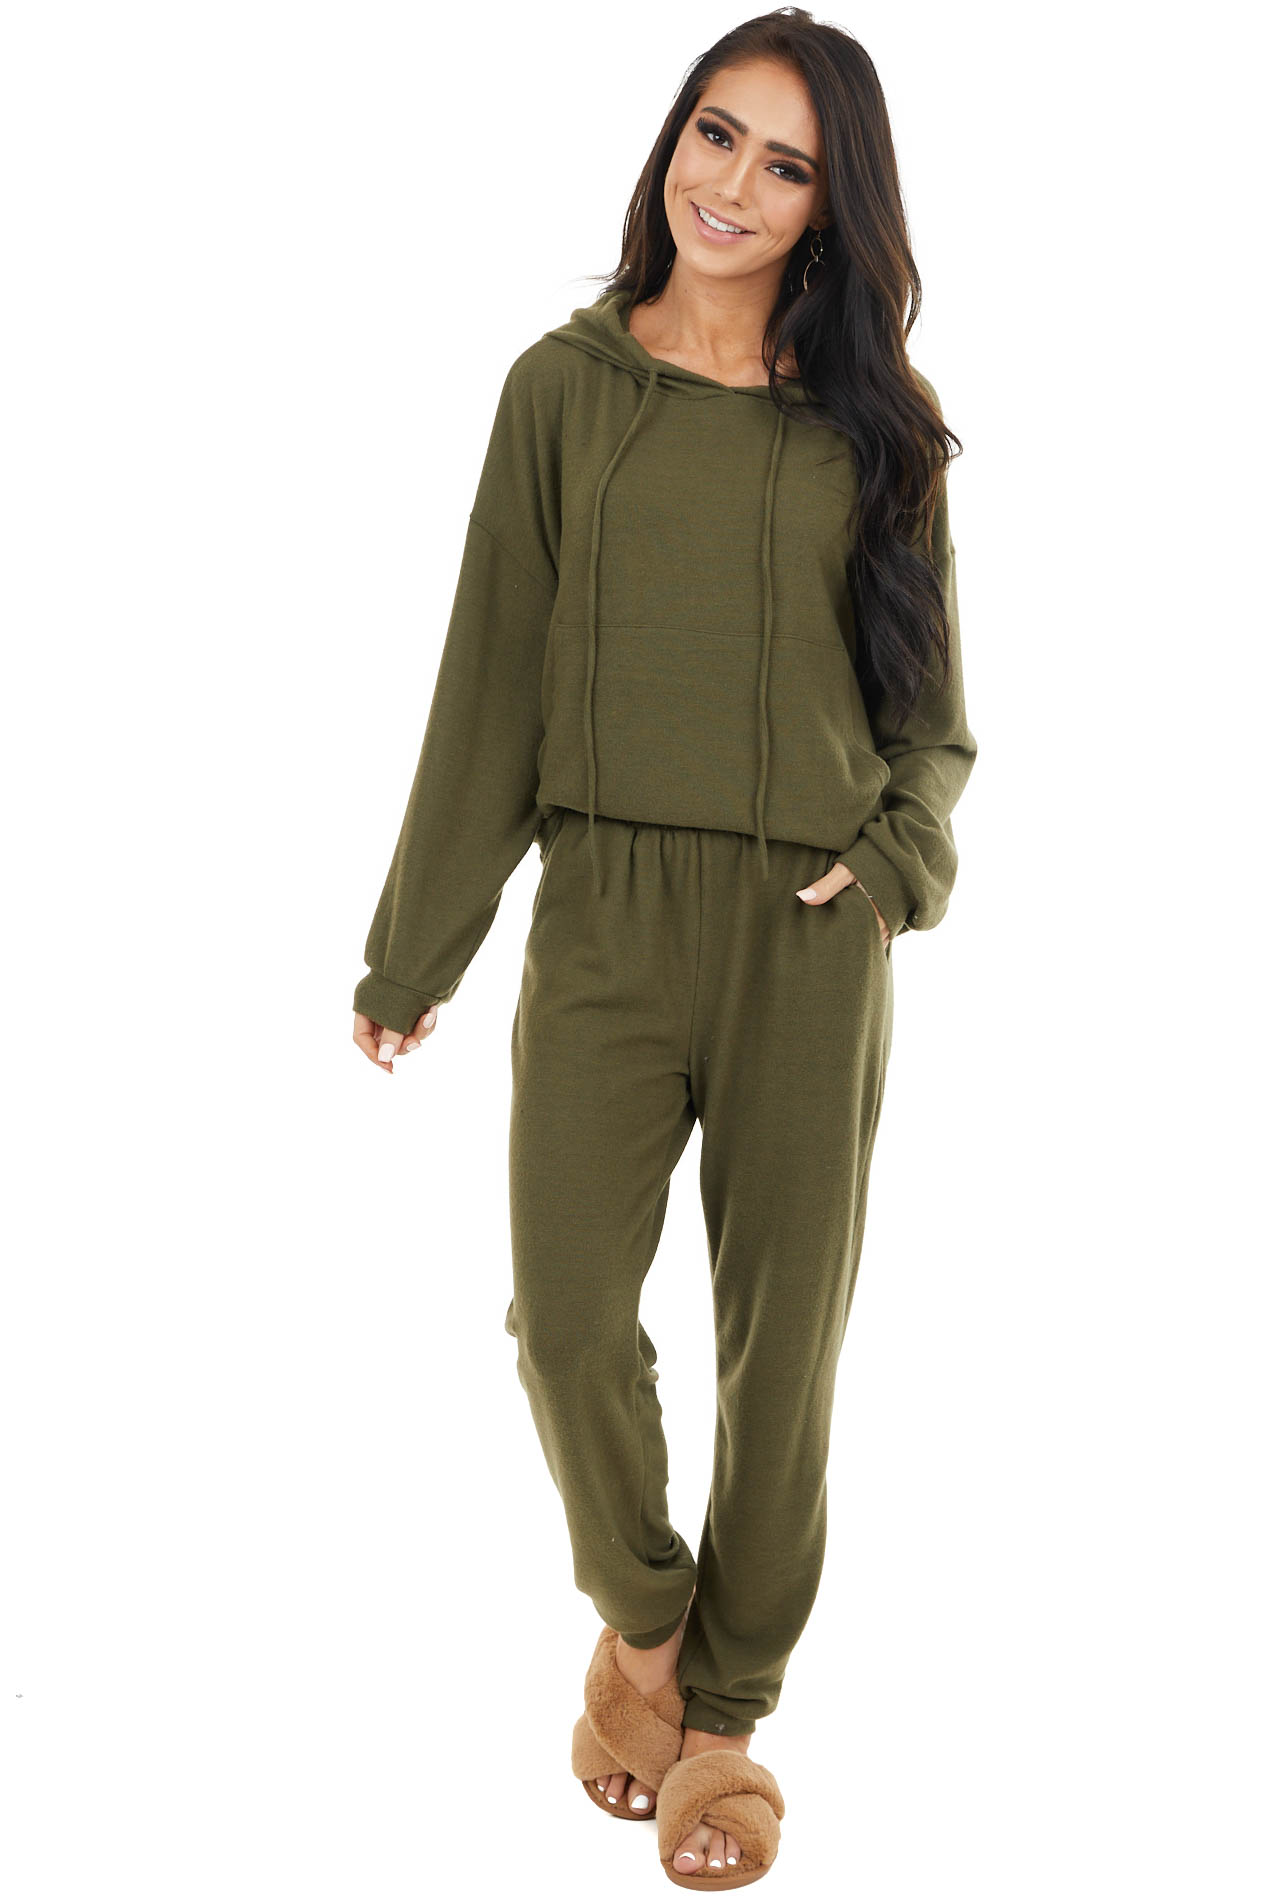 Olive Lightweight Knit Elastic Waist Joggers with Pockets